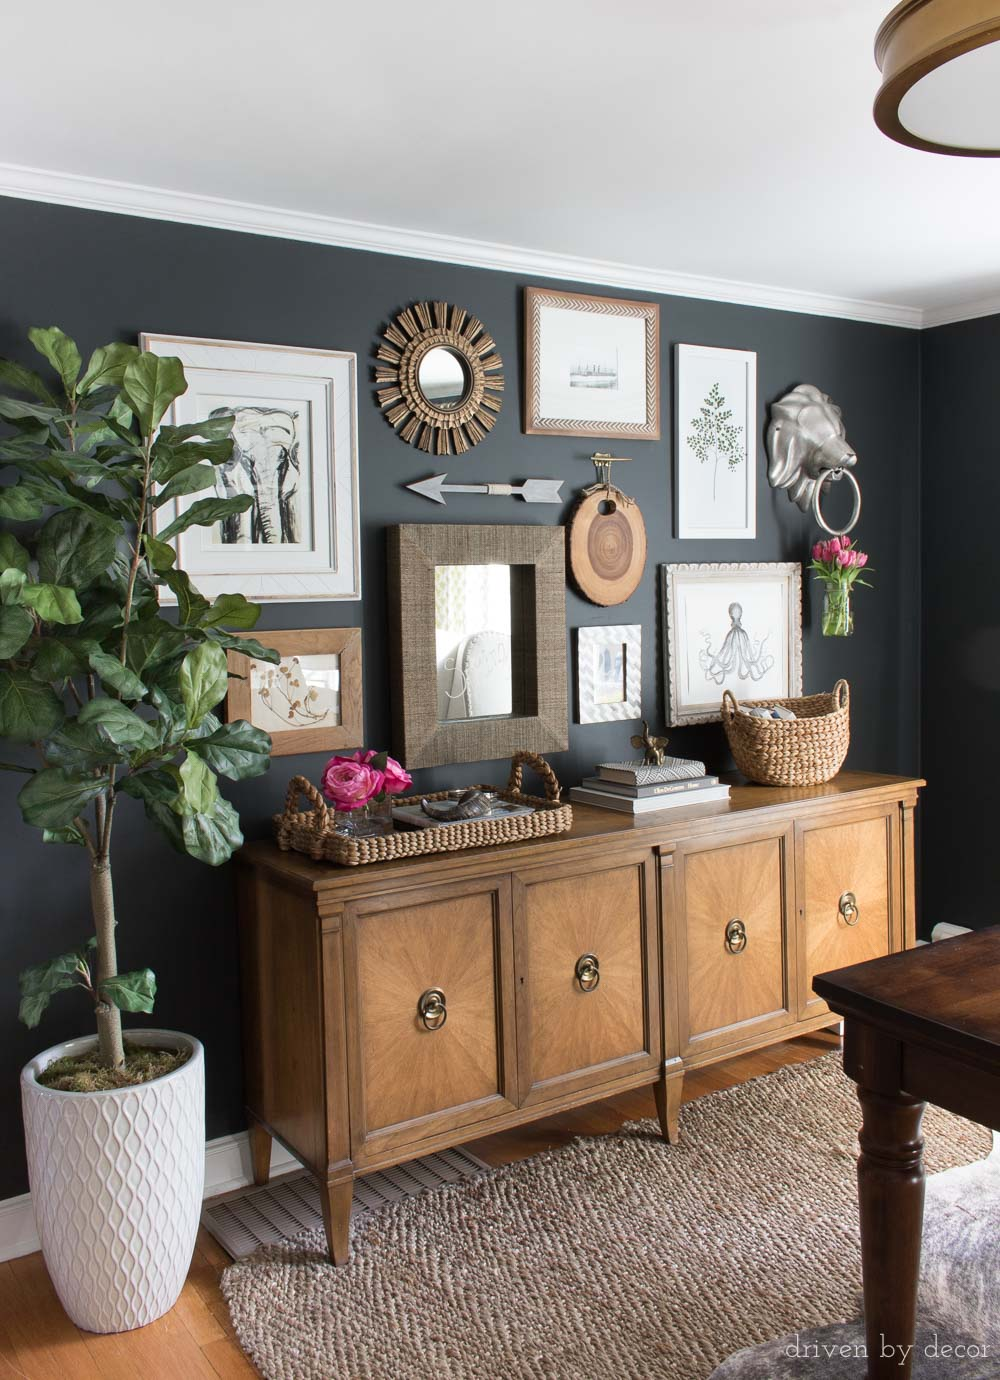 Love the mix of art and mirrors in this gallery wall hung on black walls with brass room accents